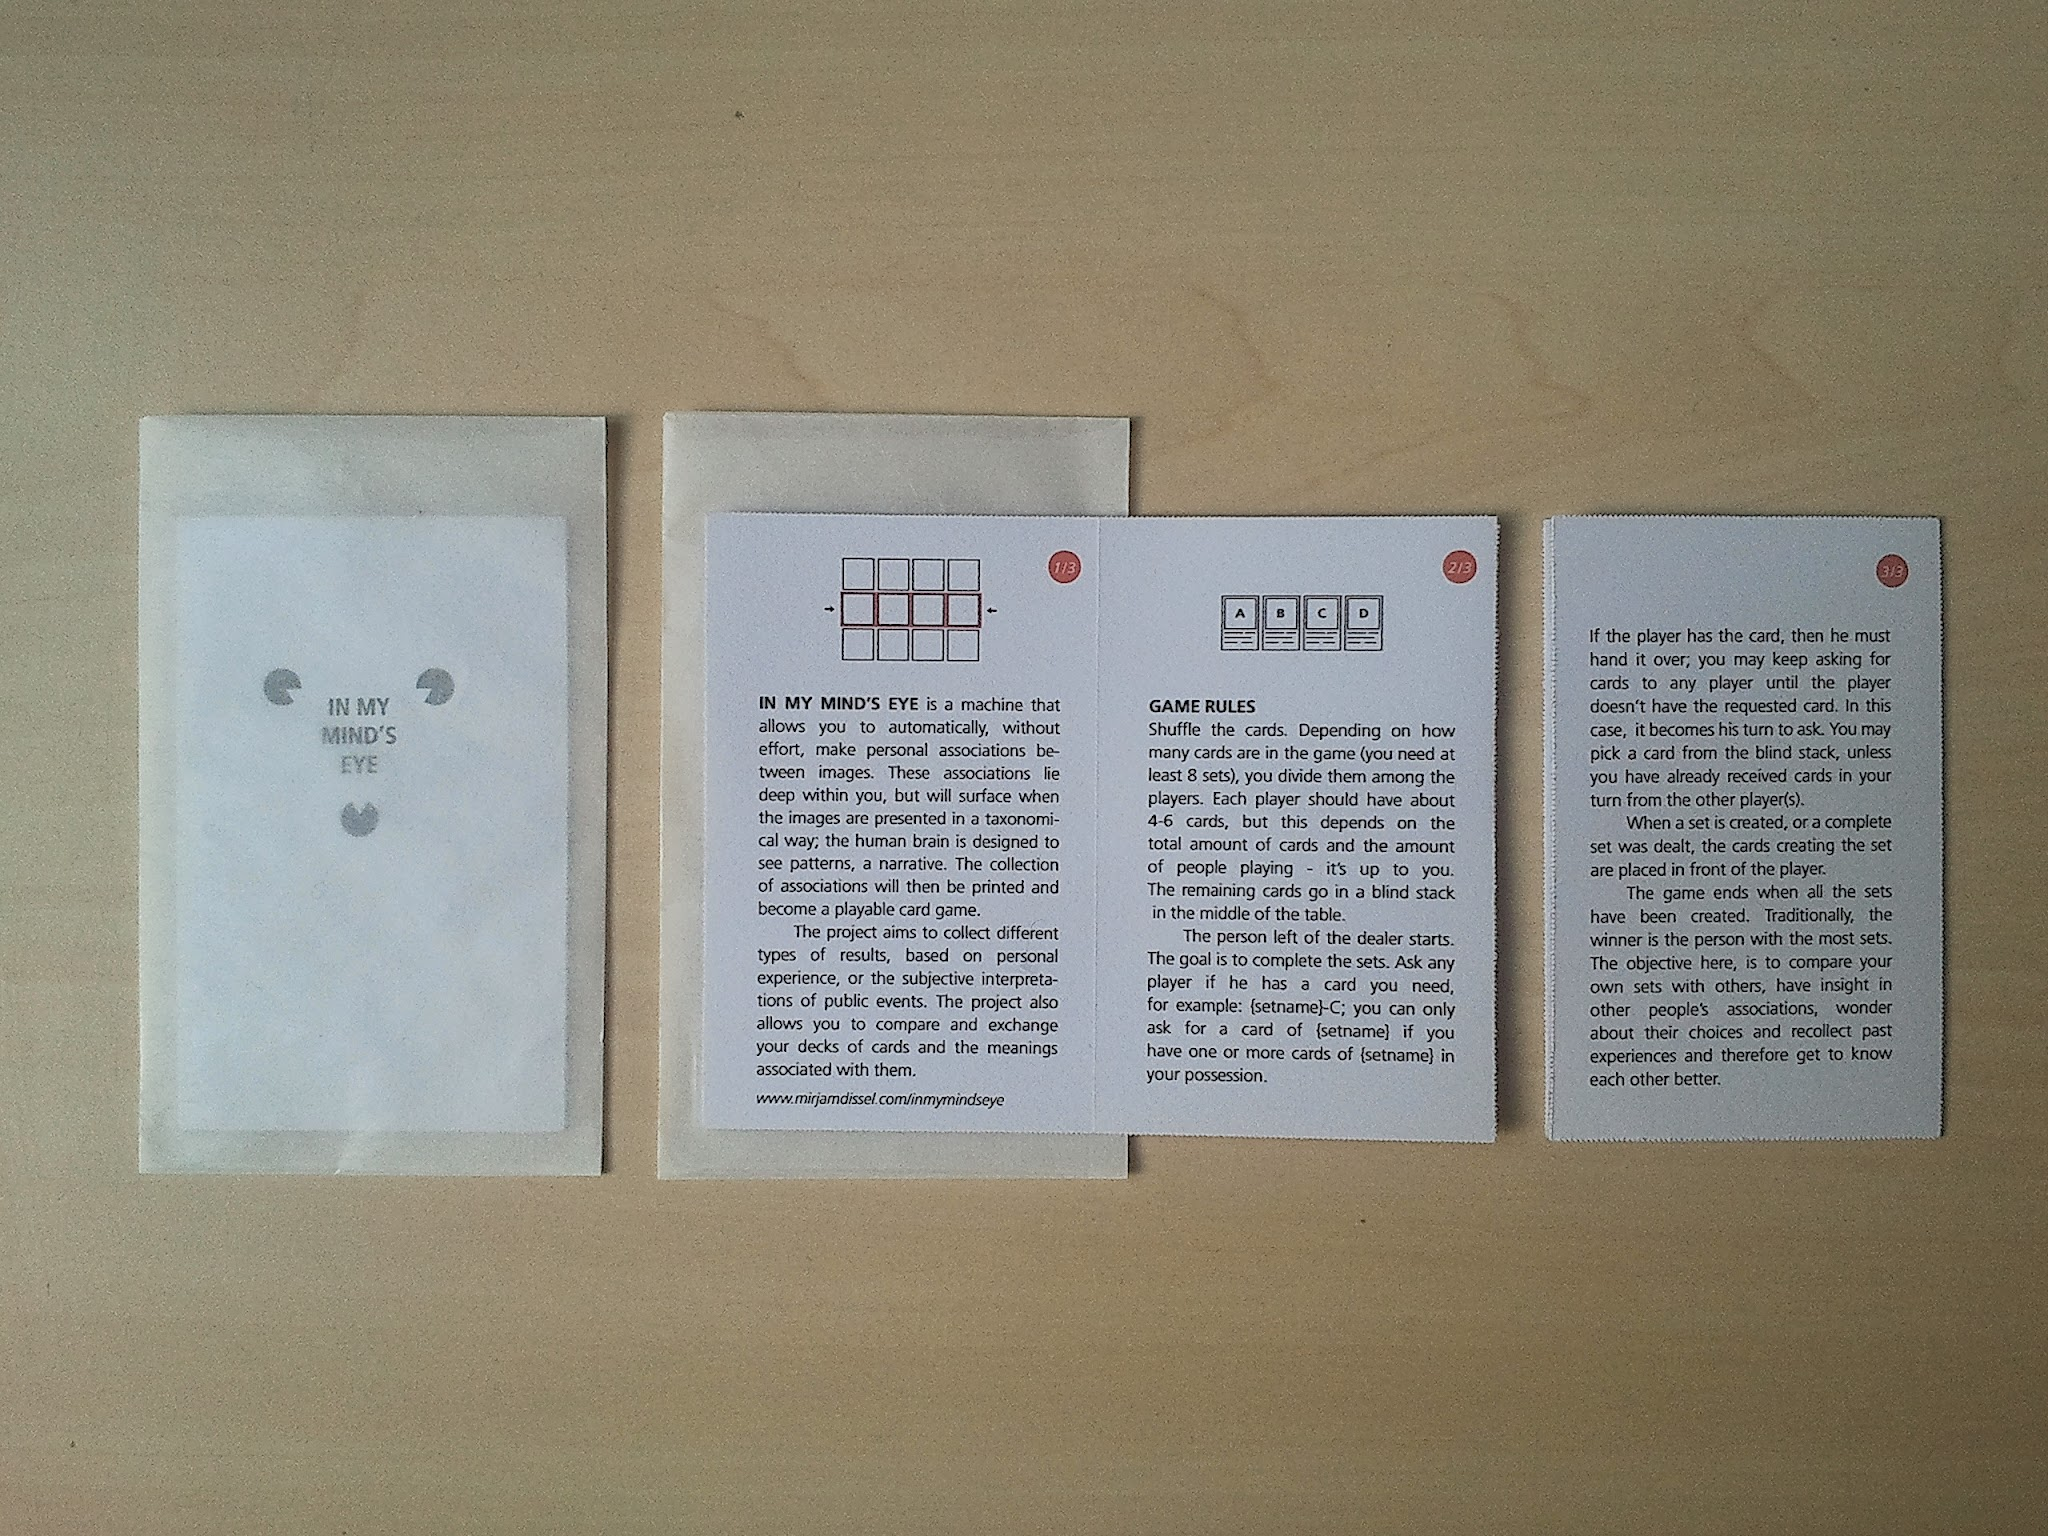 Little bag for safekeeping of card, also contains explanations of project and game